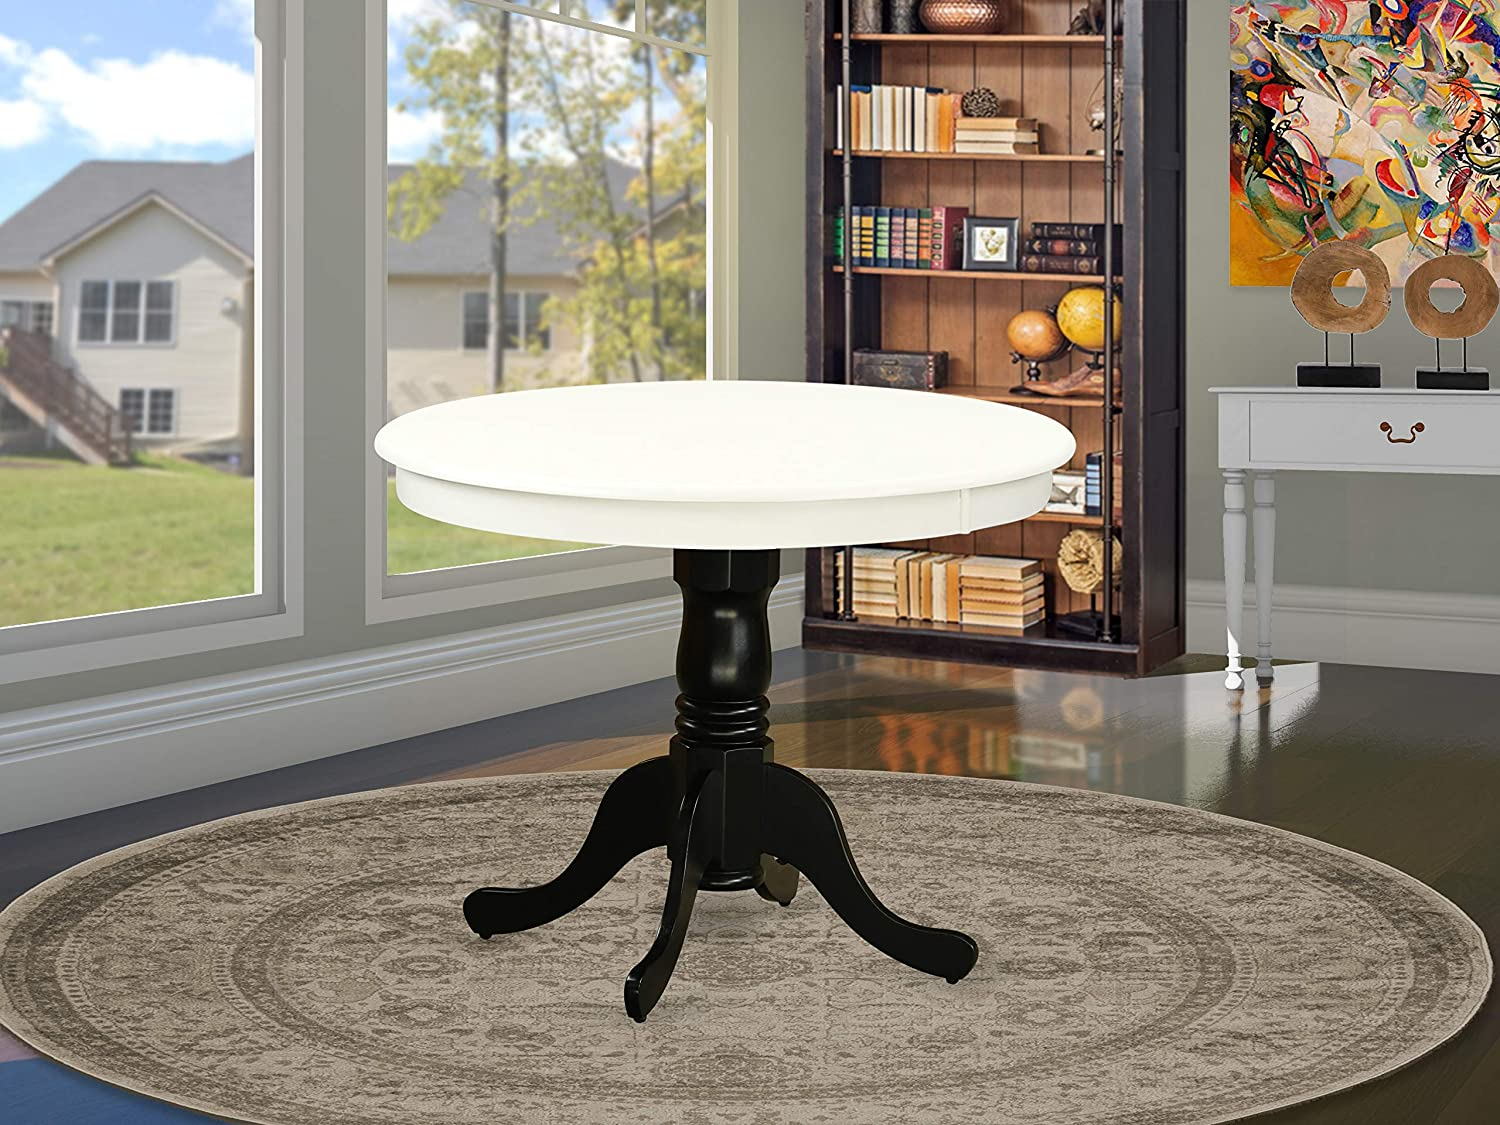 36 Inch Round Wirebrushed Black Pedestal East West Furniture AMT-WBK-TP Antique Dining Made of Rubber Wood offering Walnut Finish Table Top